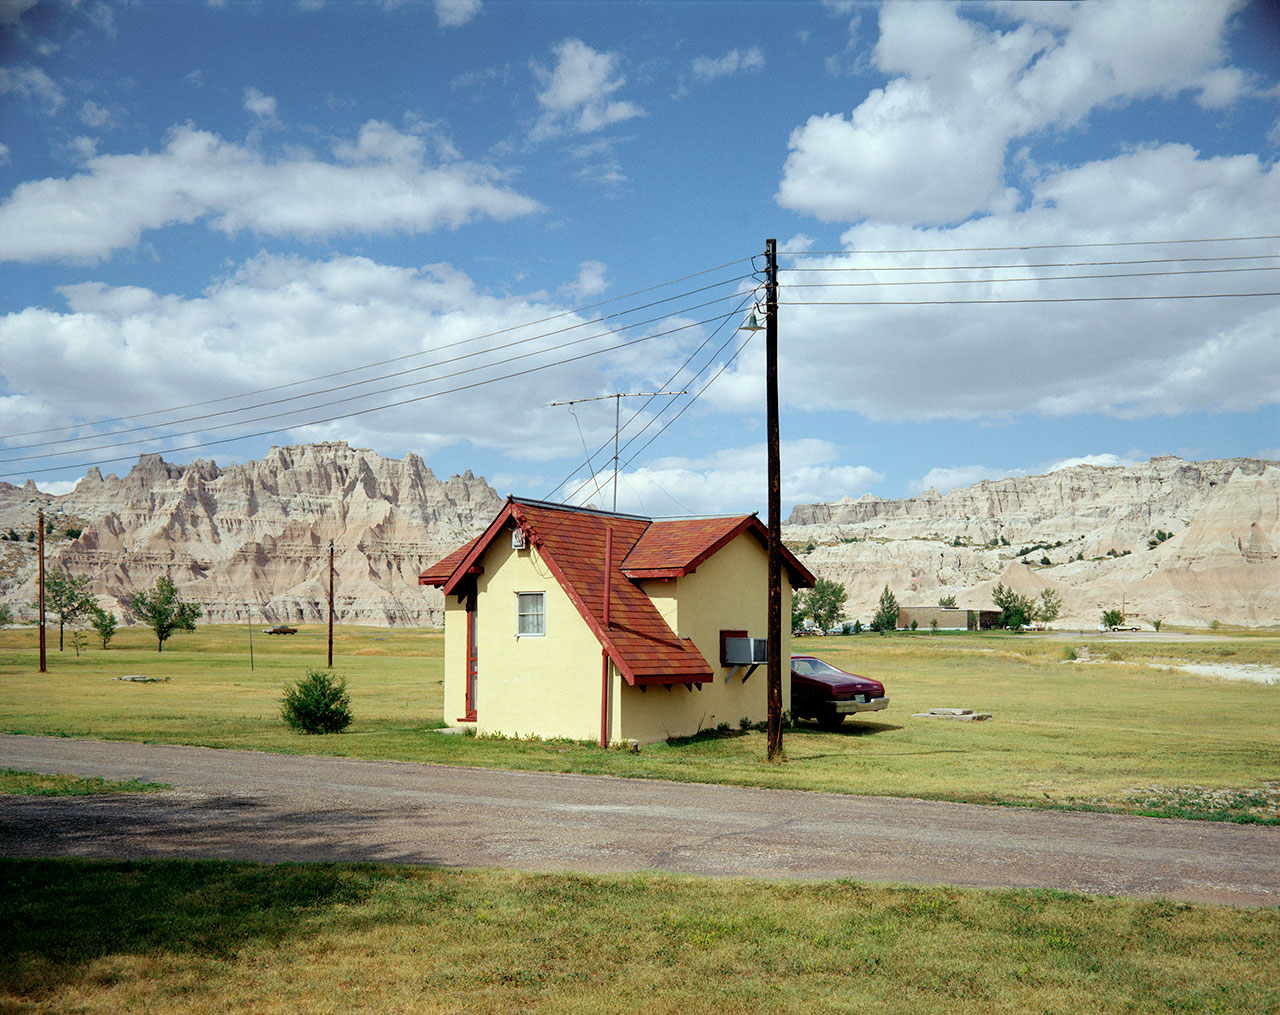 Stephen Shore, 'Badlands National Monument, South Dakota, July 14, 1973', 1973 (printed 2014). C-print, Edition of 8, 43.2 x 55.2 cm / Paper 50.8 x 61 cm / Framed 59 x 68 cm. Courtesy of the artist and 303 Gallery, New York.